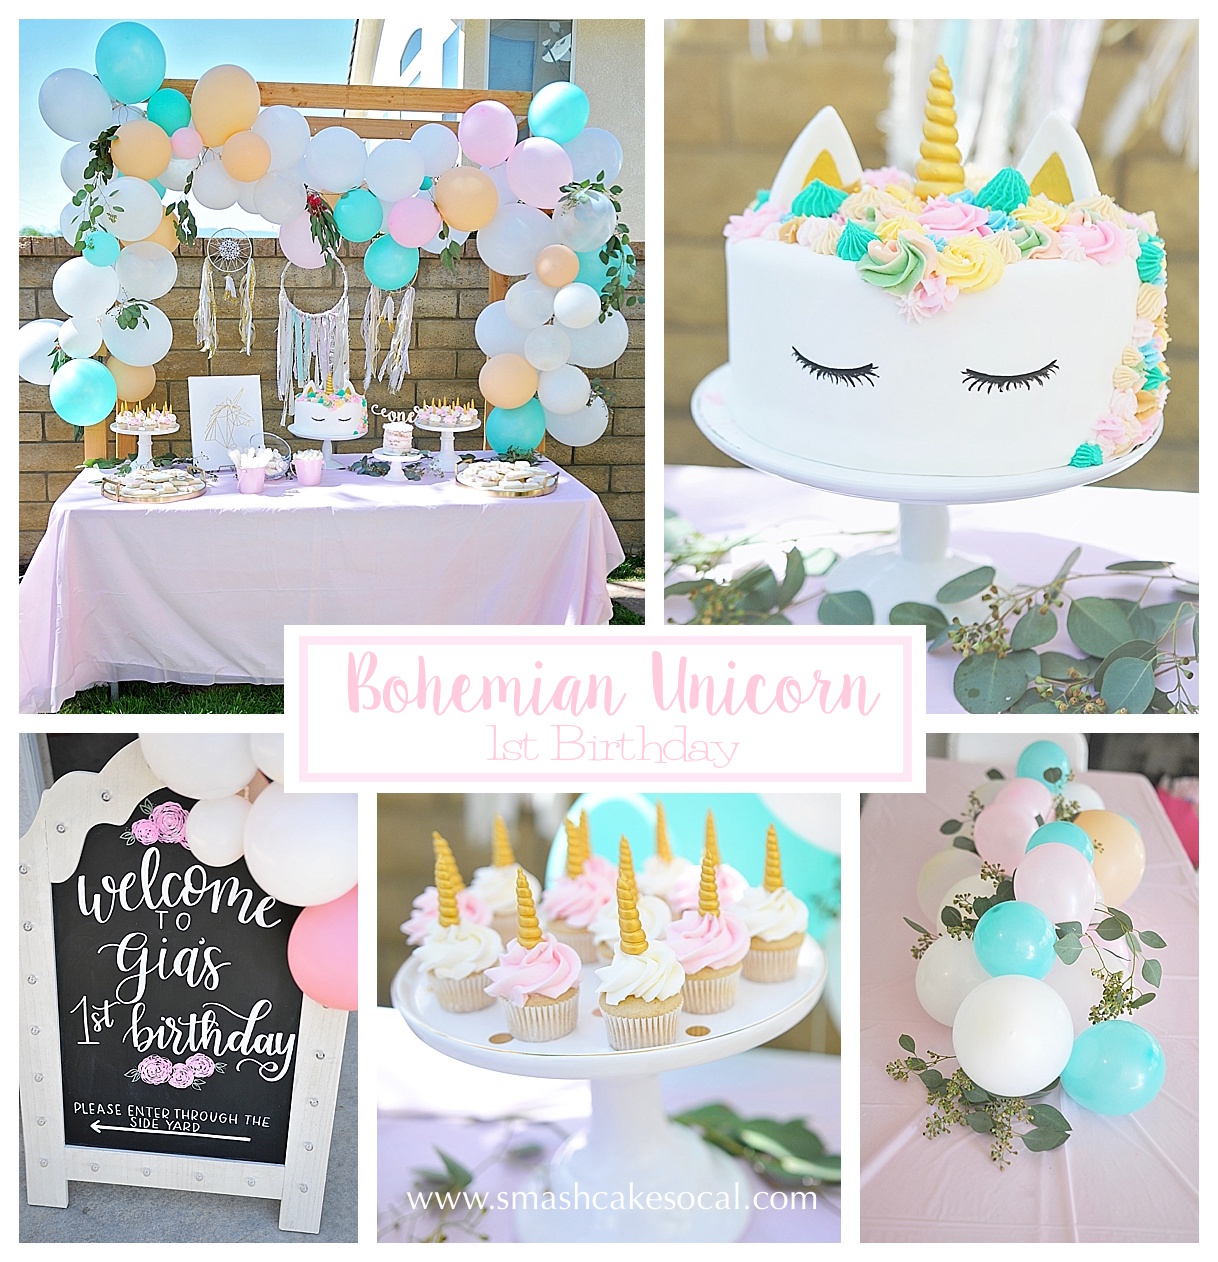 Bohemian Unicorn 1st Birthday Smash Cake